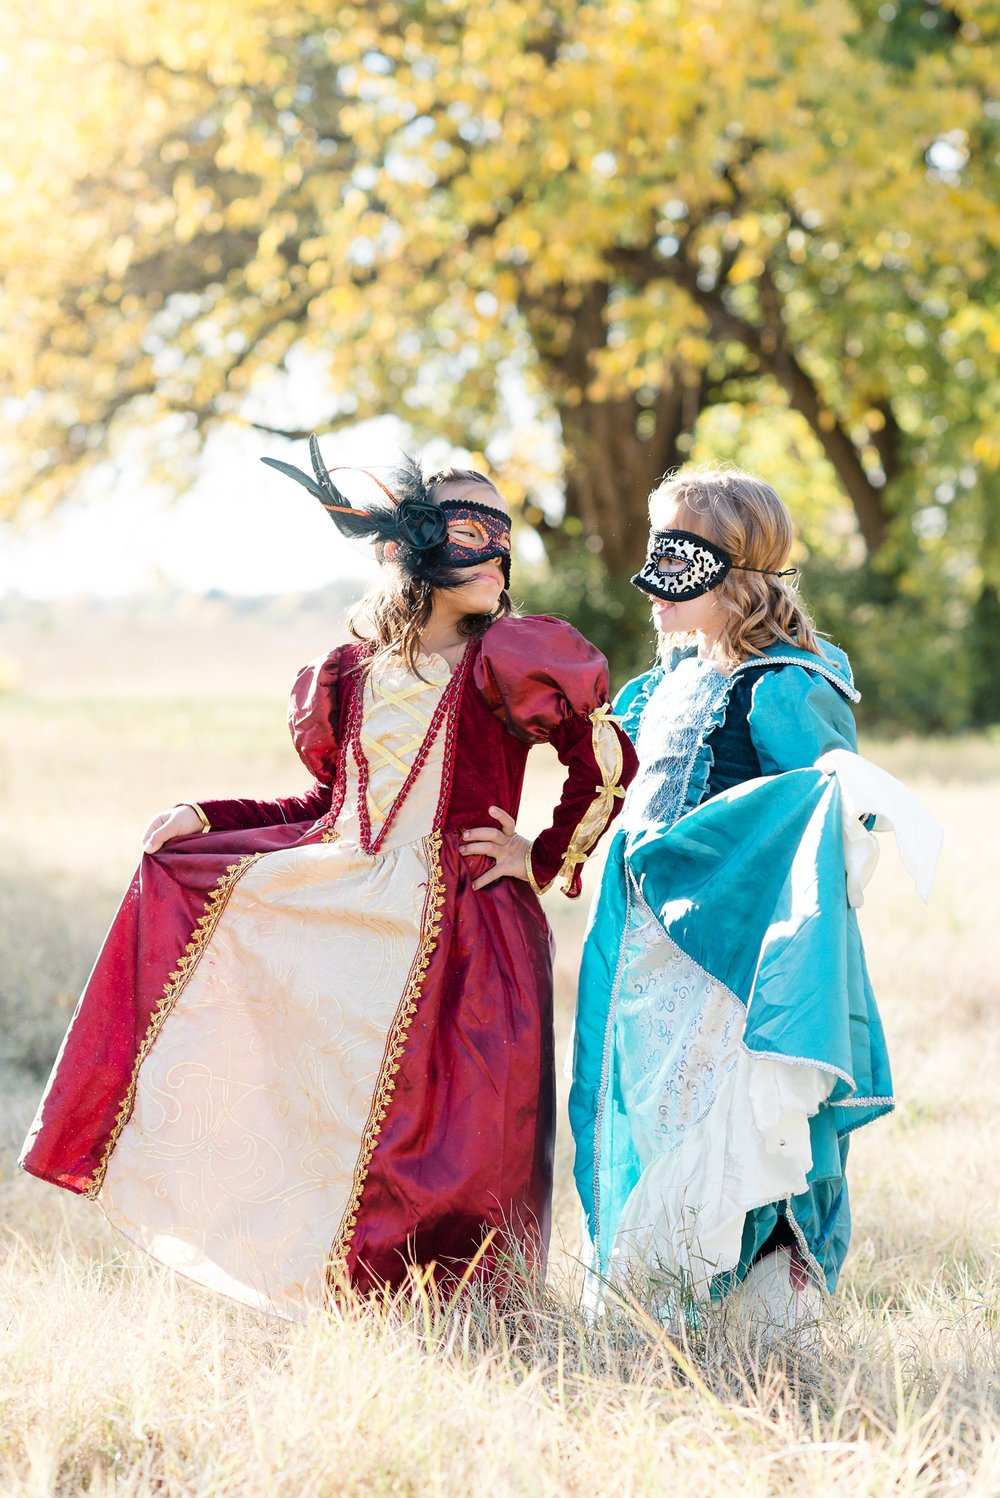 Masked Costume Portraits in Dayton by AndreaBelleStudios.com